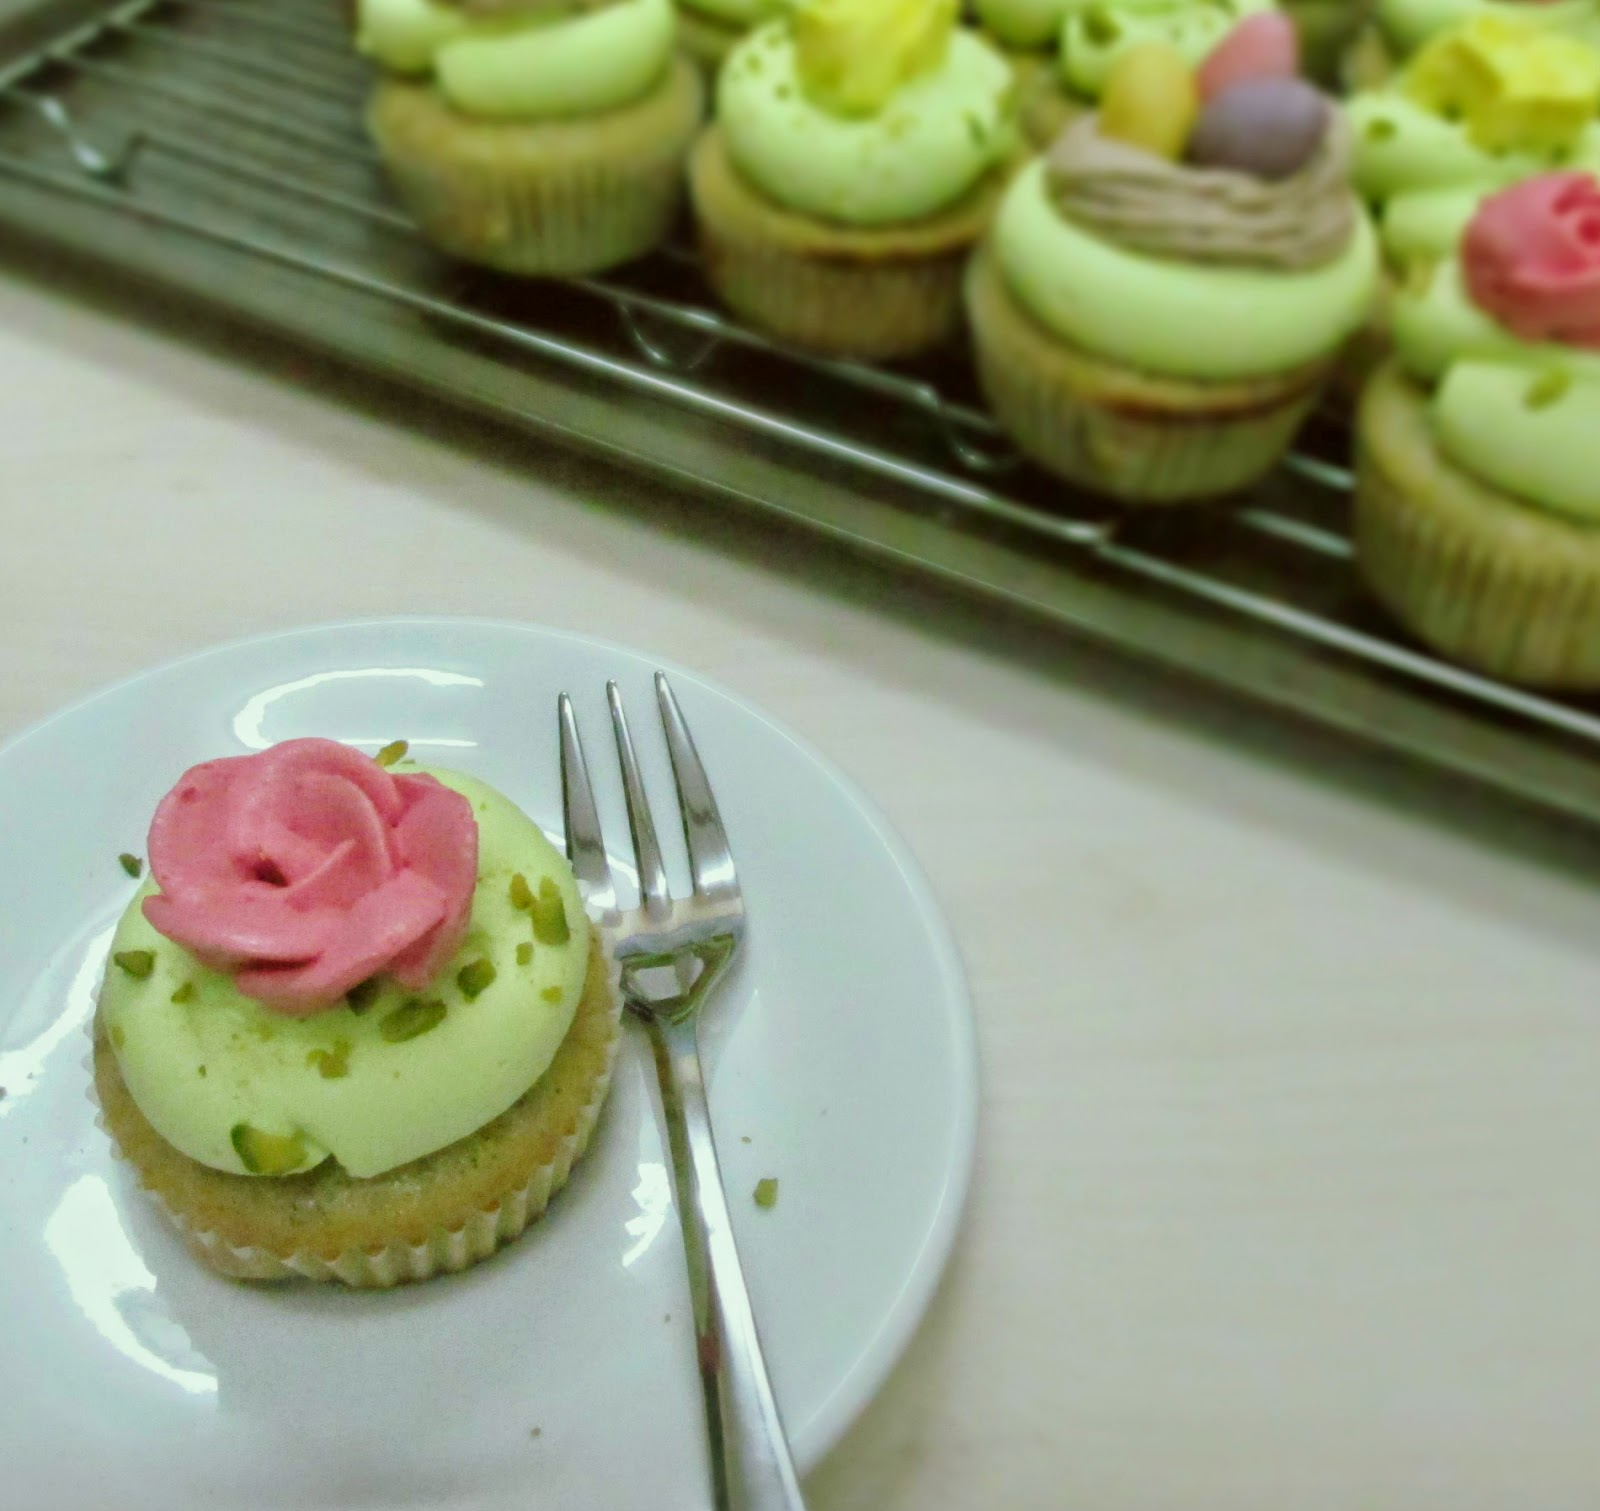 Darlene made this: Pistachio Rose Cupcakes